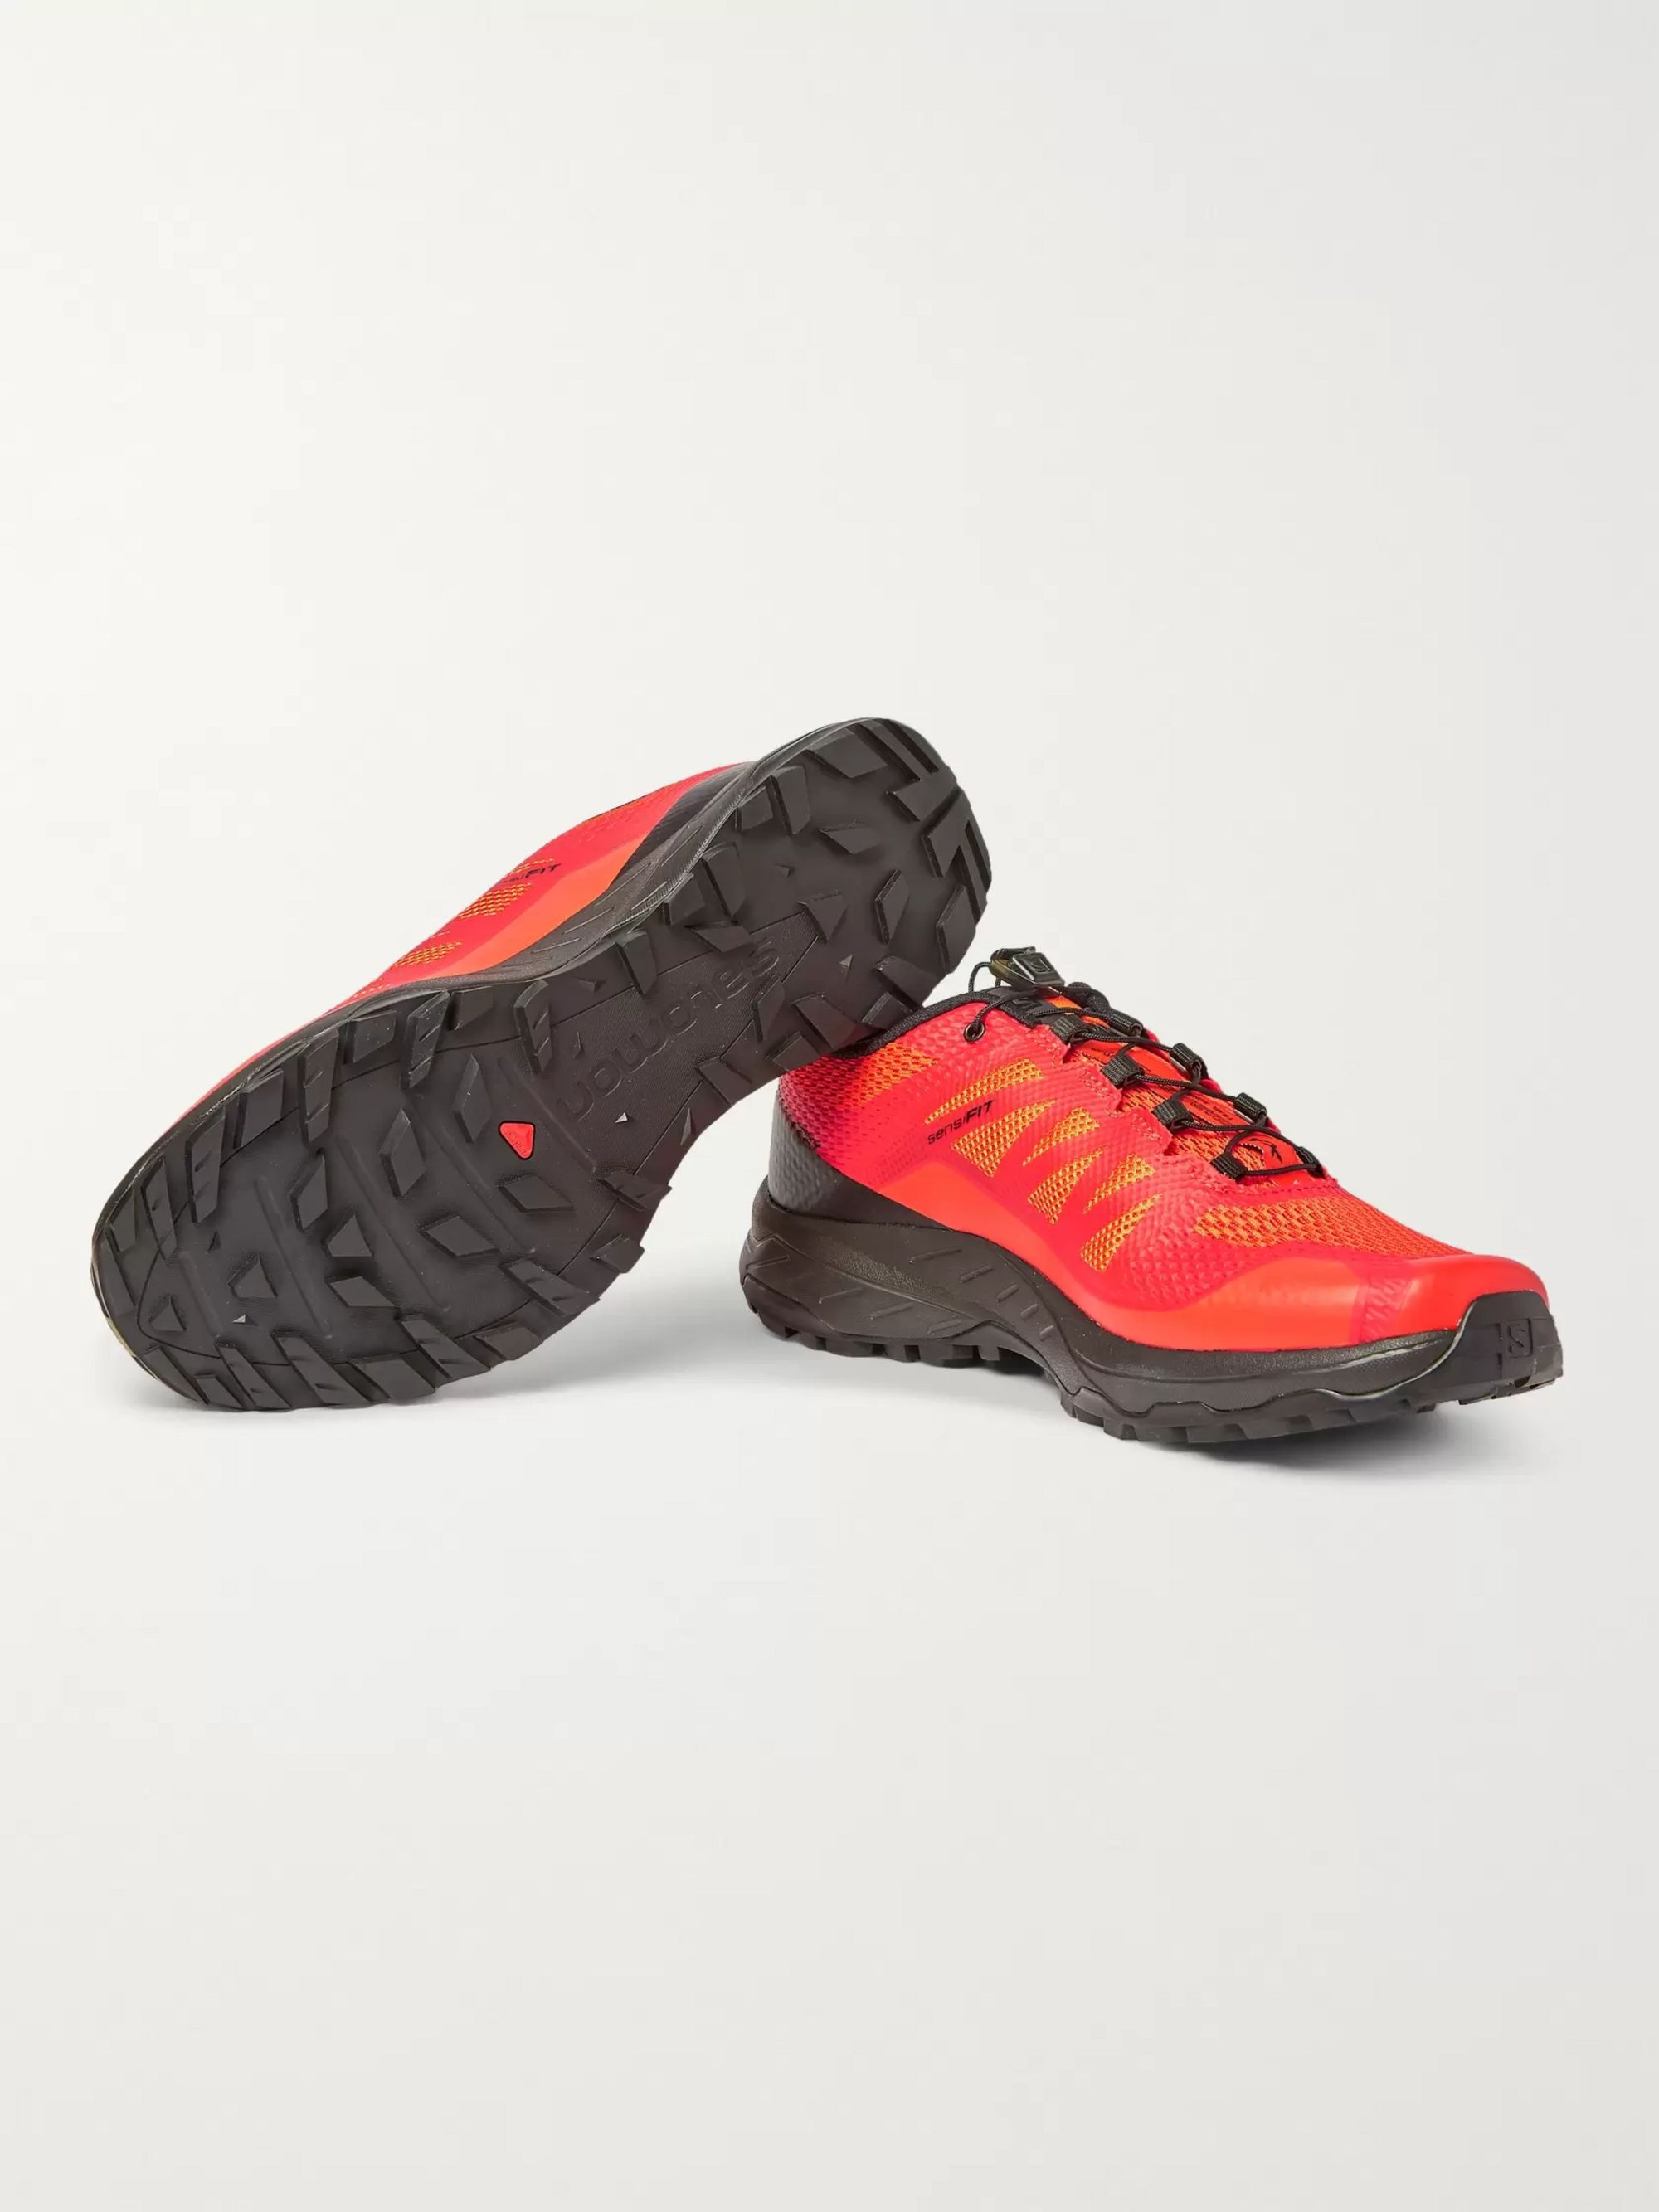 Salomon XA Discovery GORE-TEX Trail Running Sneakers